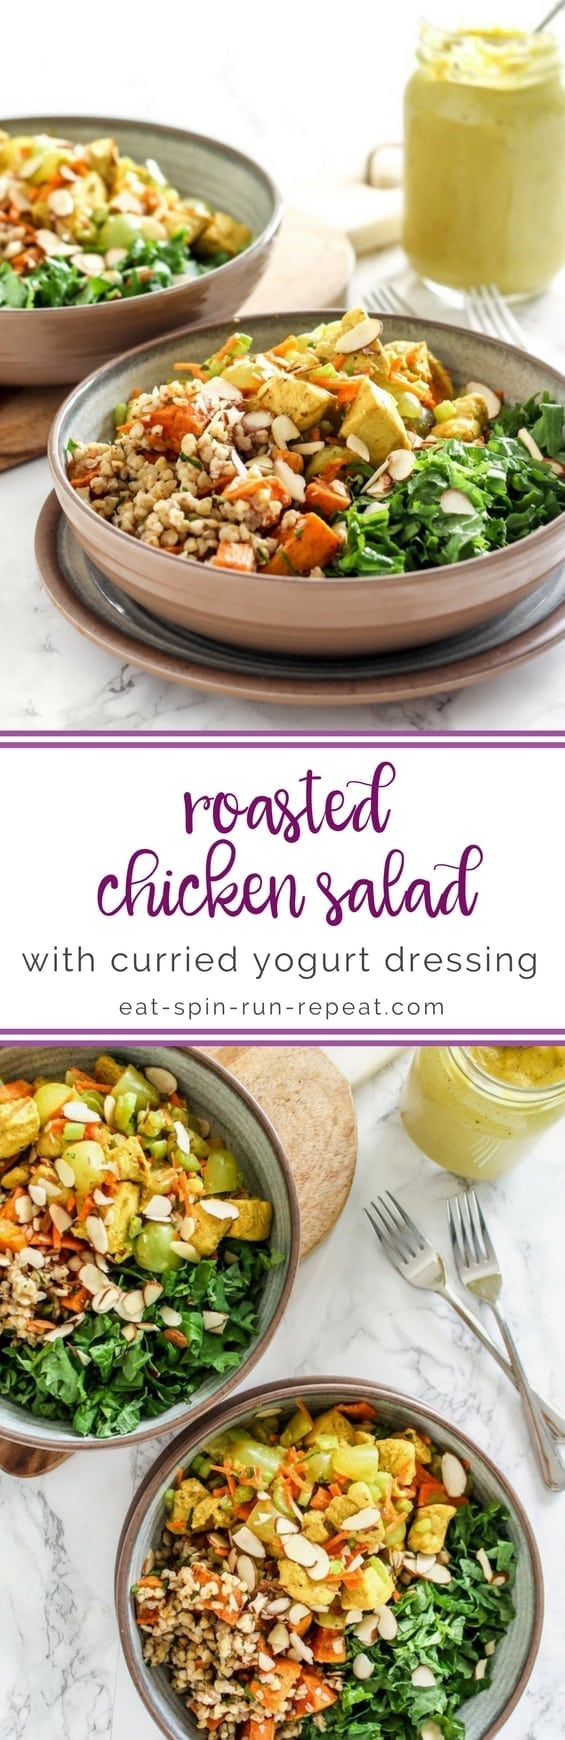 Roasted Chicken Salad with Curried Yogurt Dressing || #glutenfree #dairyfree #antiinflammatory || Eat Spin Run Repeat